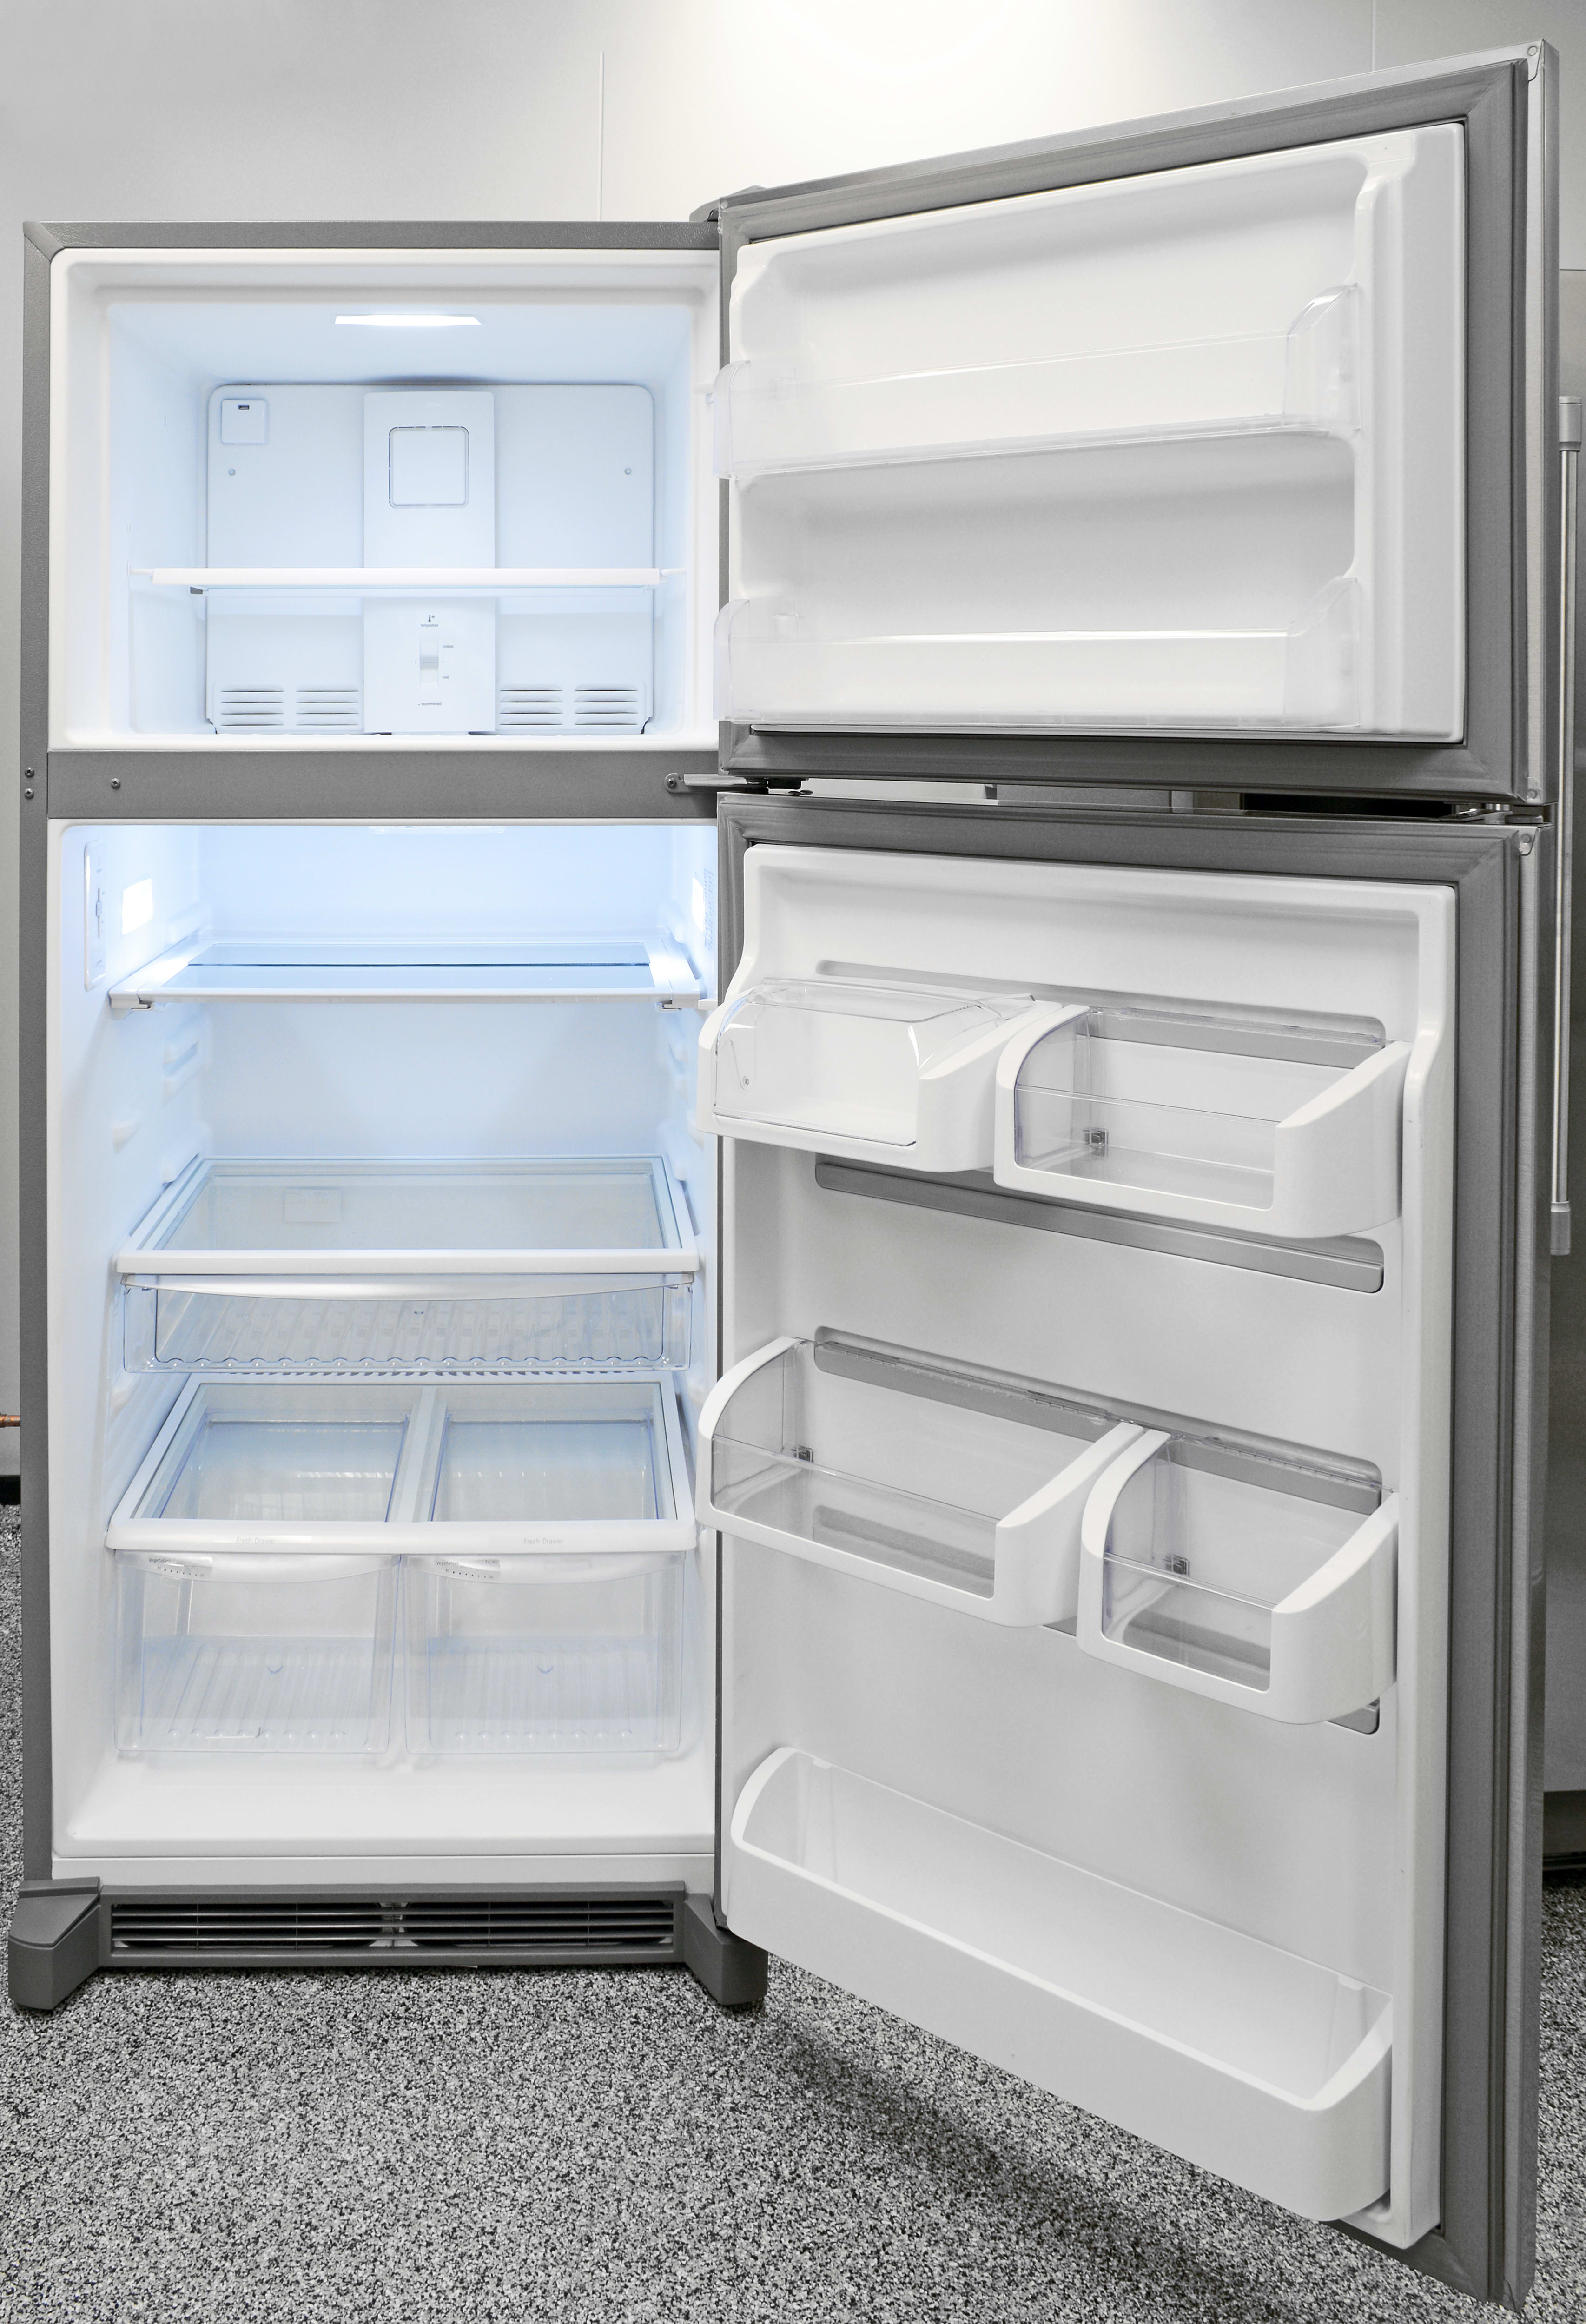 The Frigidaire Gallery FGHT2046QF's LED lights go a long way in adding to a higher-end aesthetic.